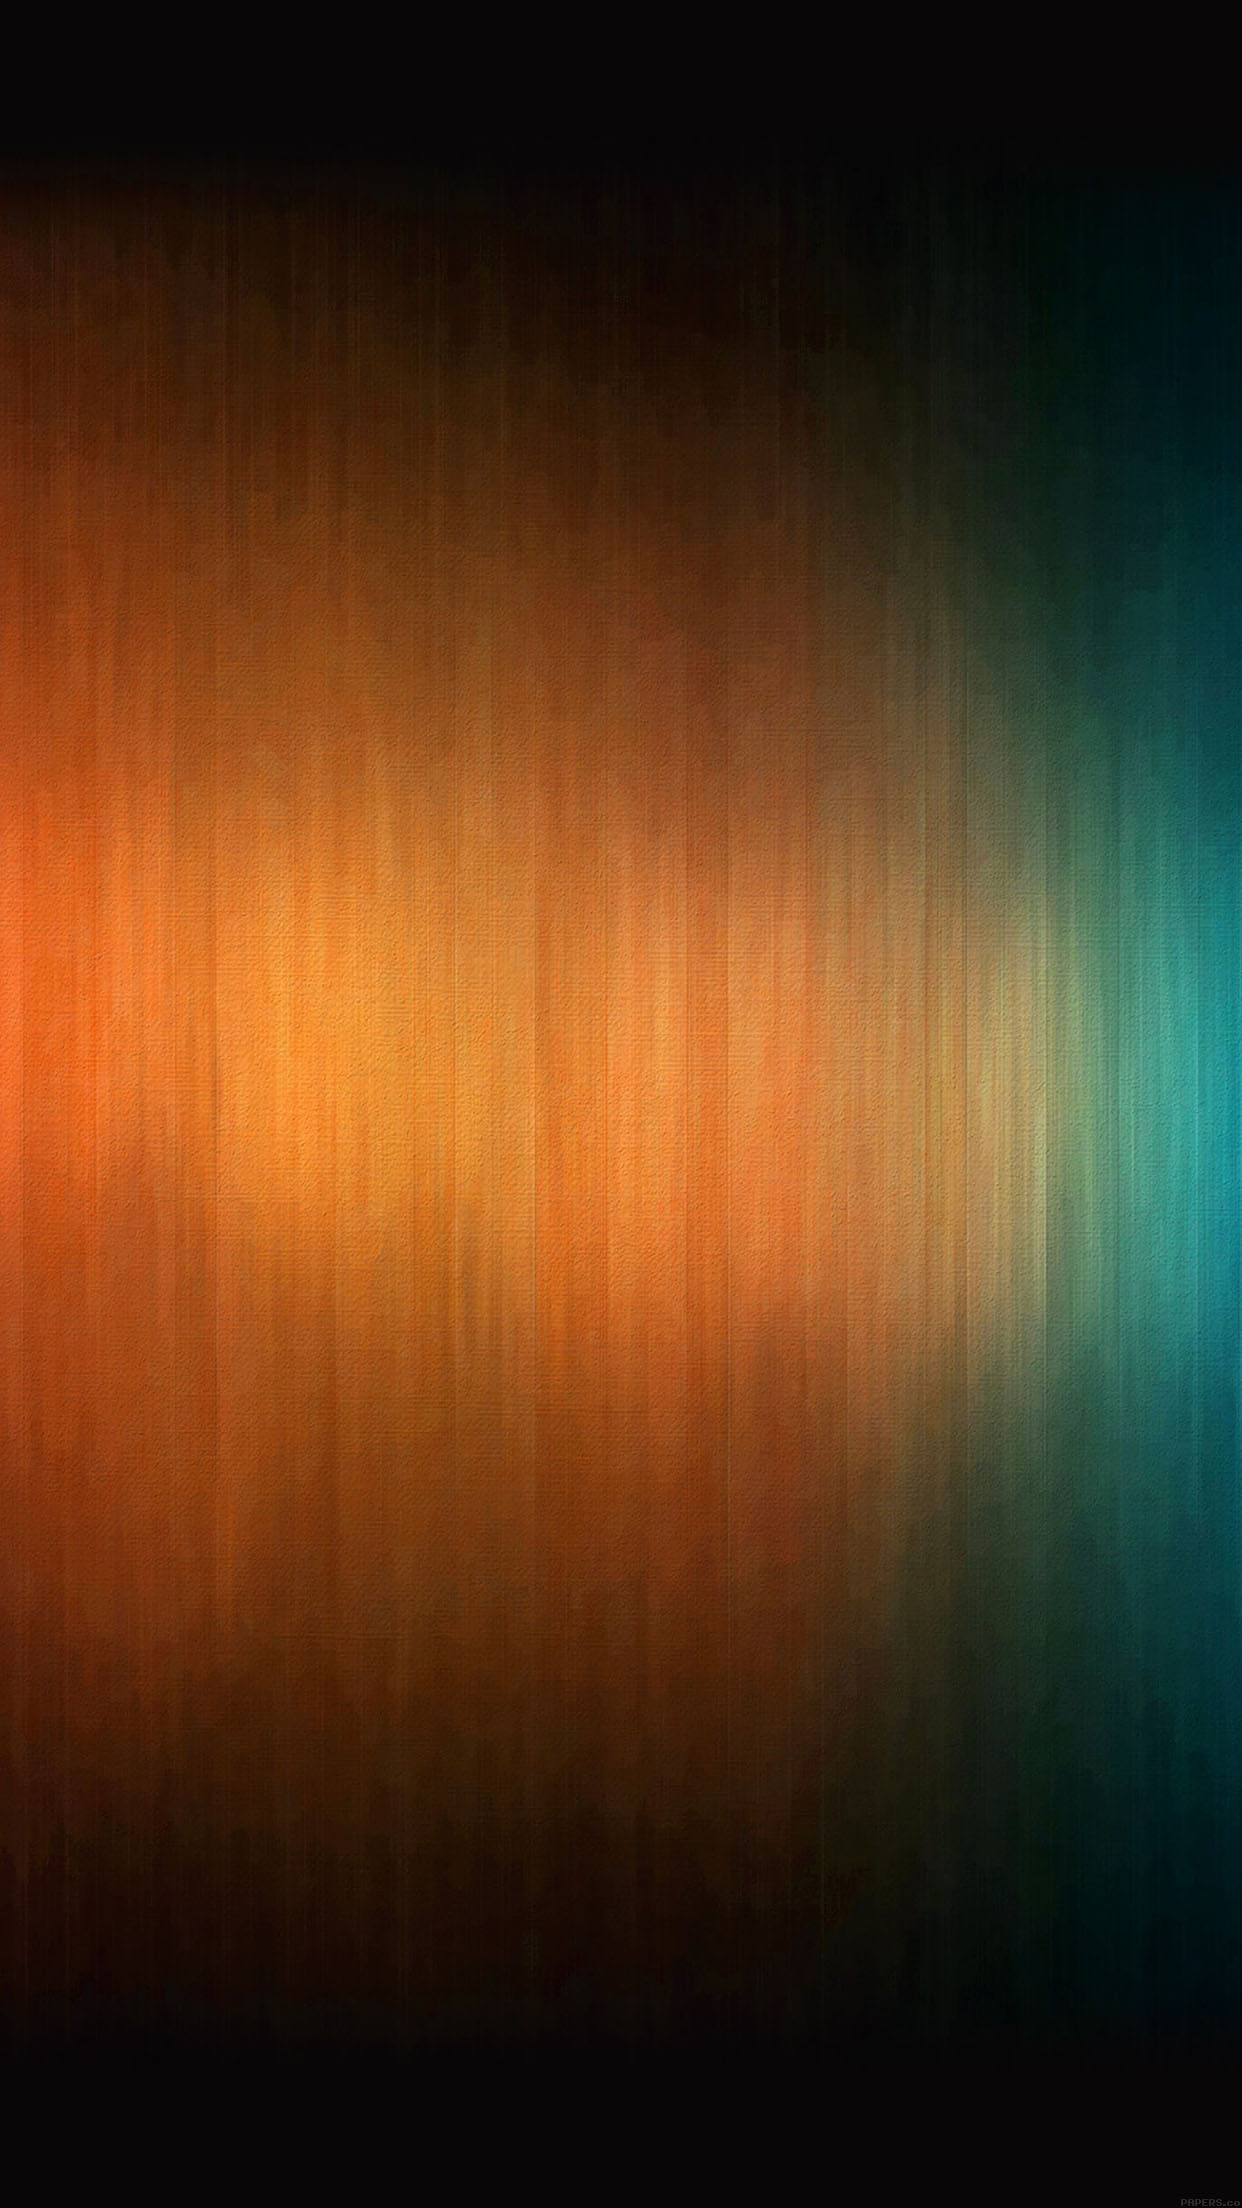 Va21 smooth rainbow floor pattern - Classic art wallpaper iphone 5 ...